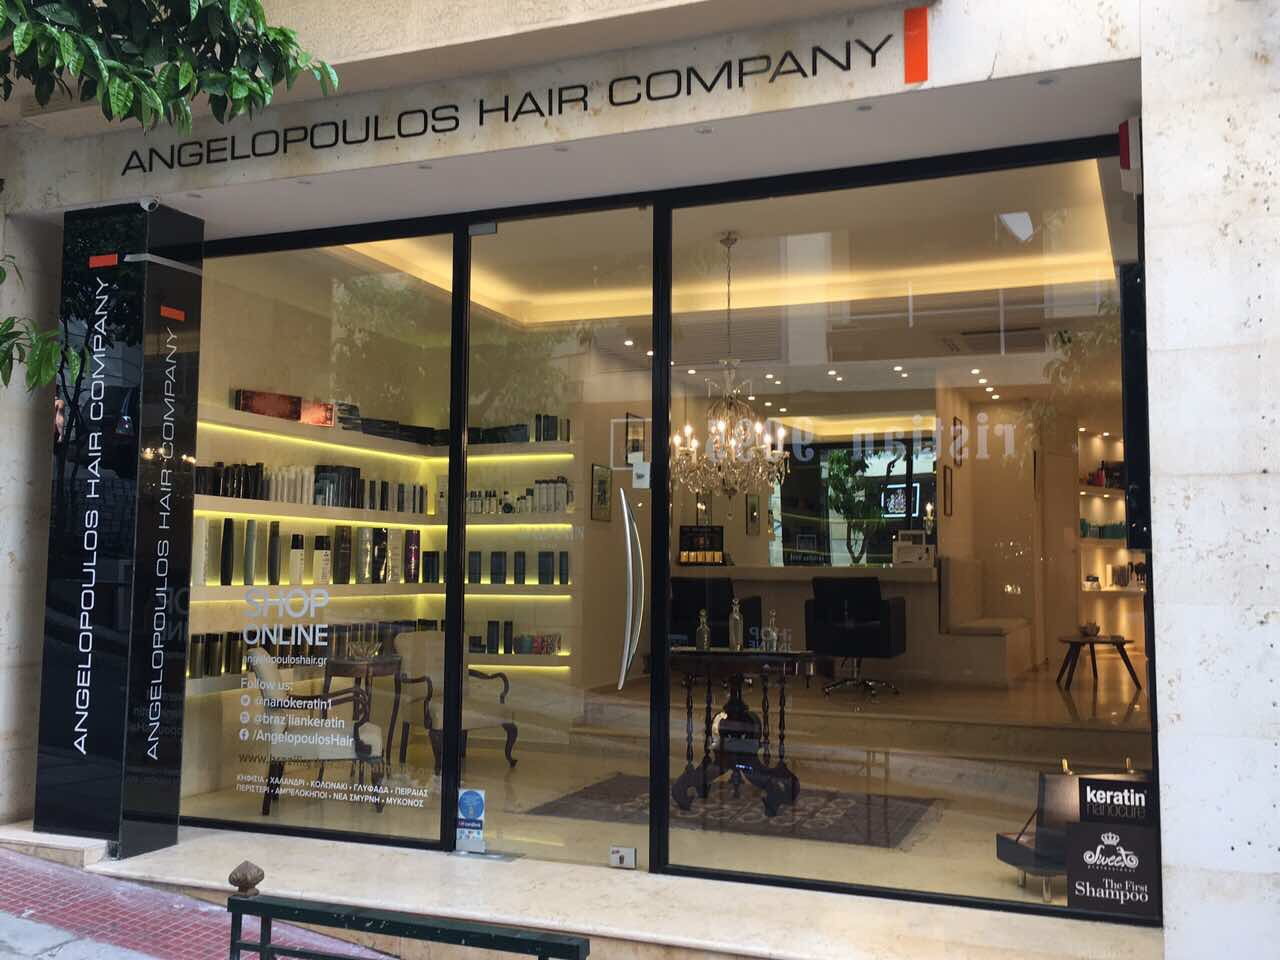 Angelopoulos Hair Company: Ποιότητα, glamour & prestige